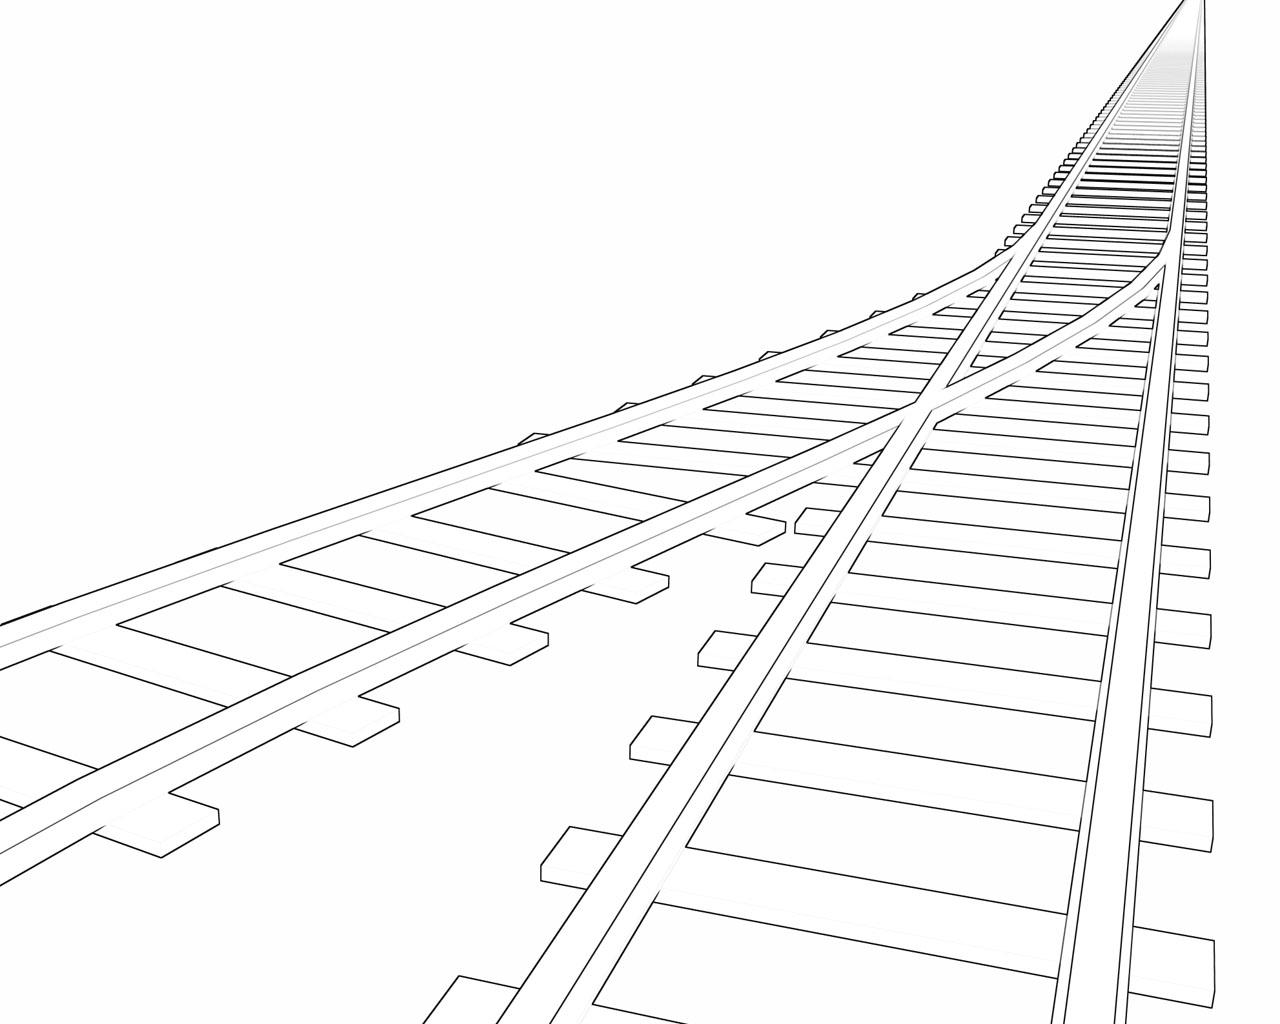 Drawing Lines With Polar Tracking : Railroad track by suckup on deviantart